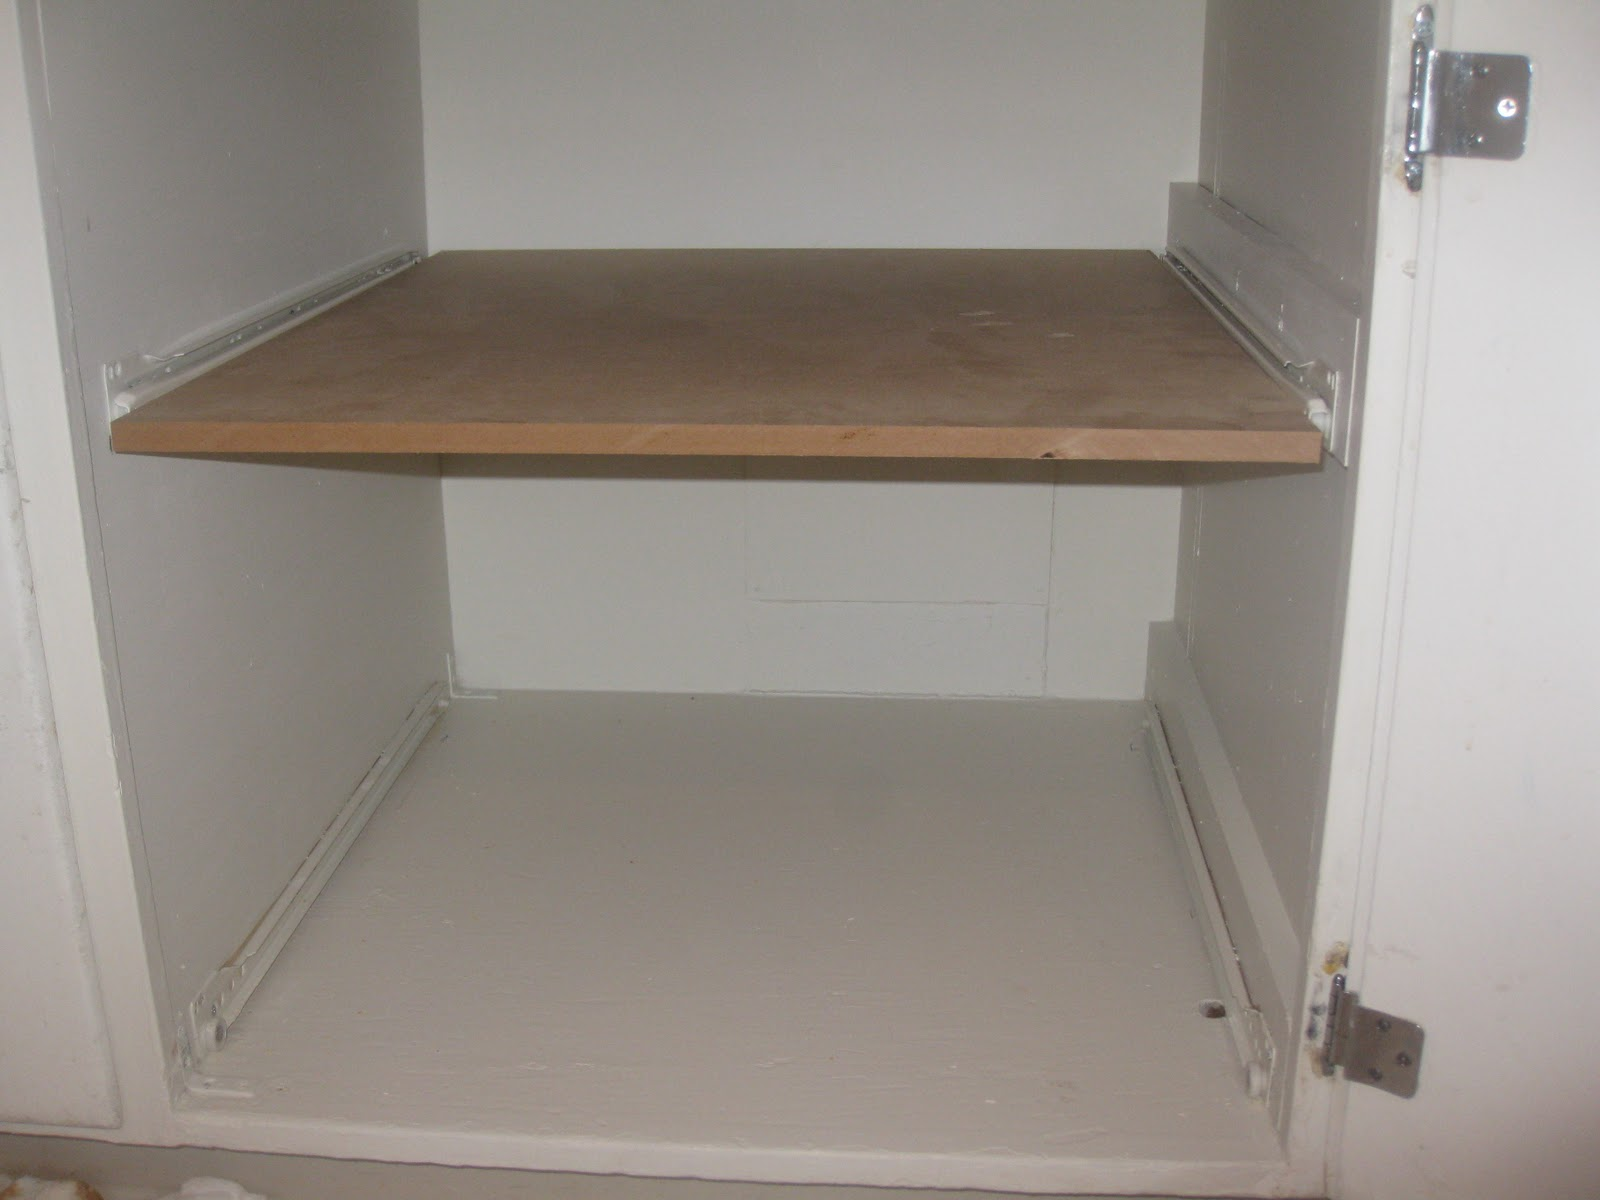 diy pull out cupboard drawers pull out kitchen cabinet DIY Pull Out Cupboard Drawers